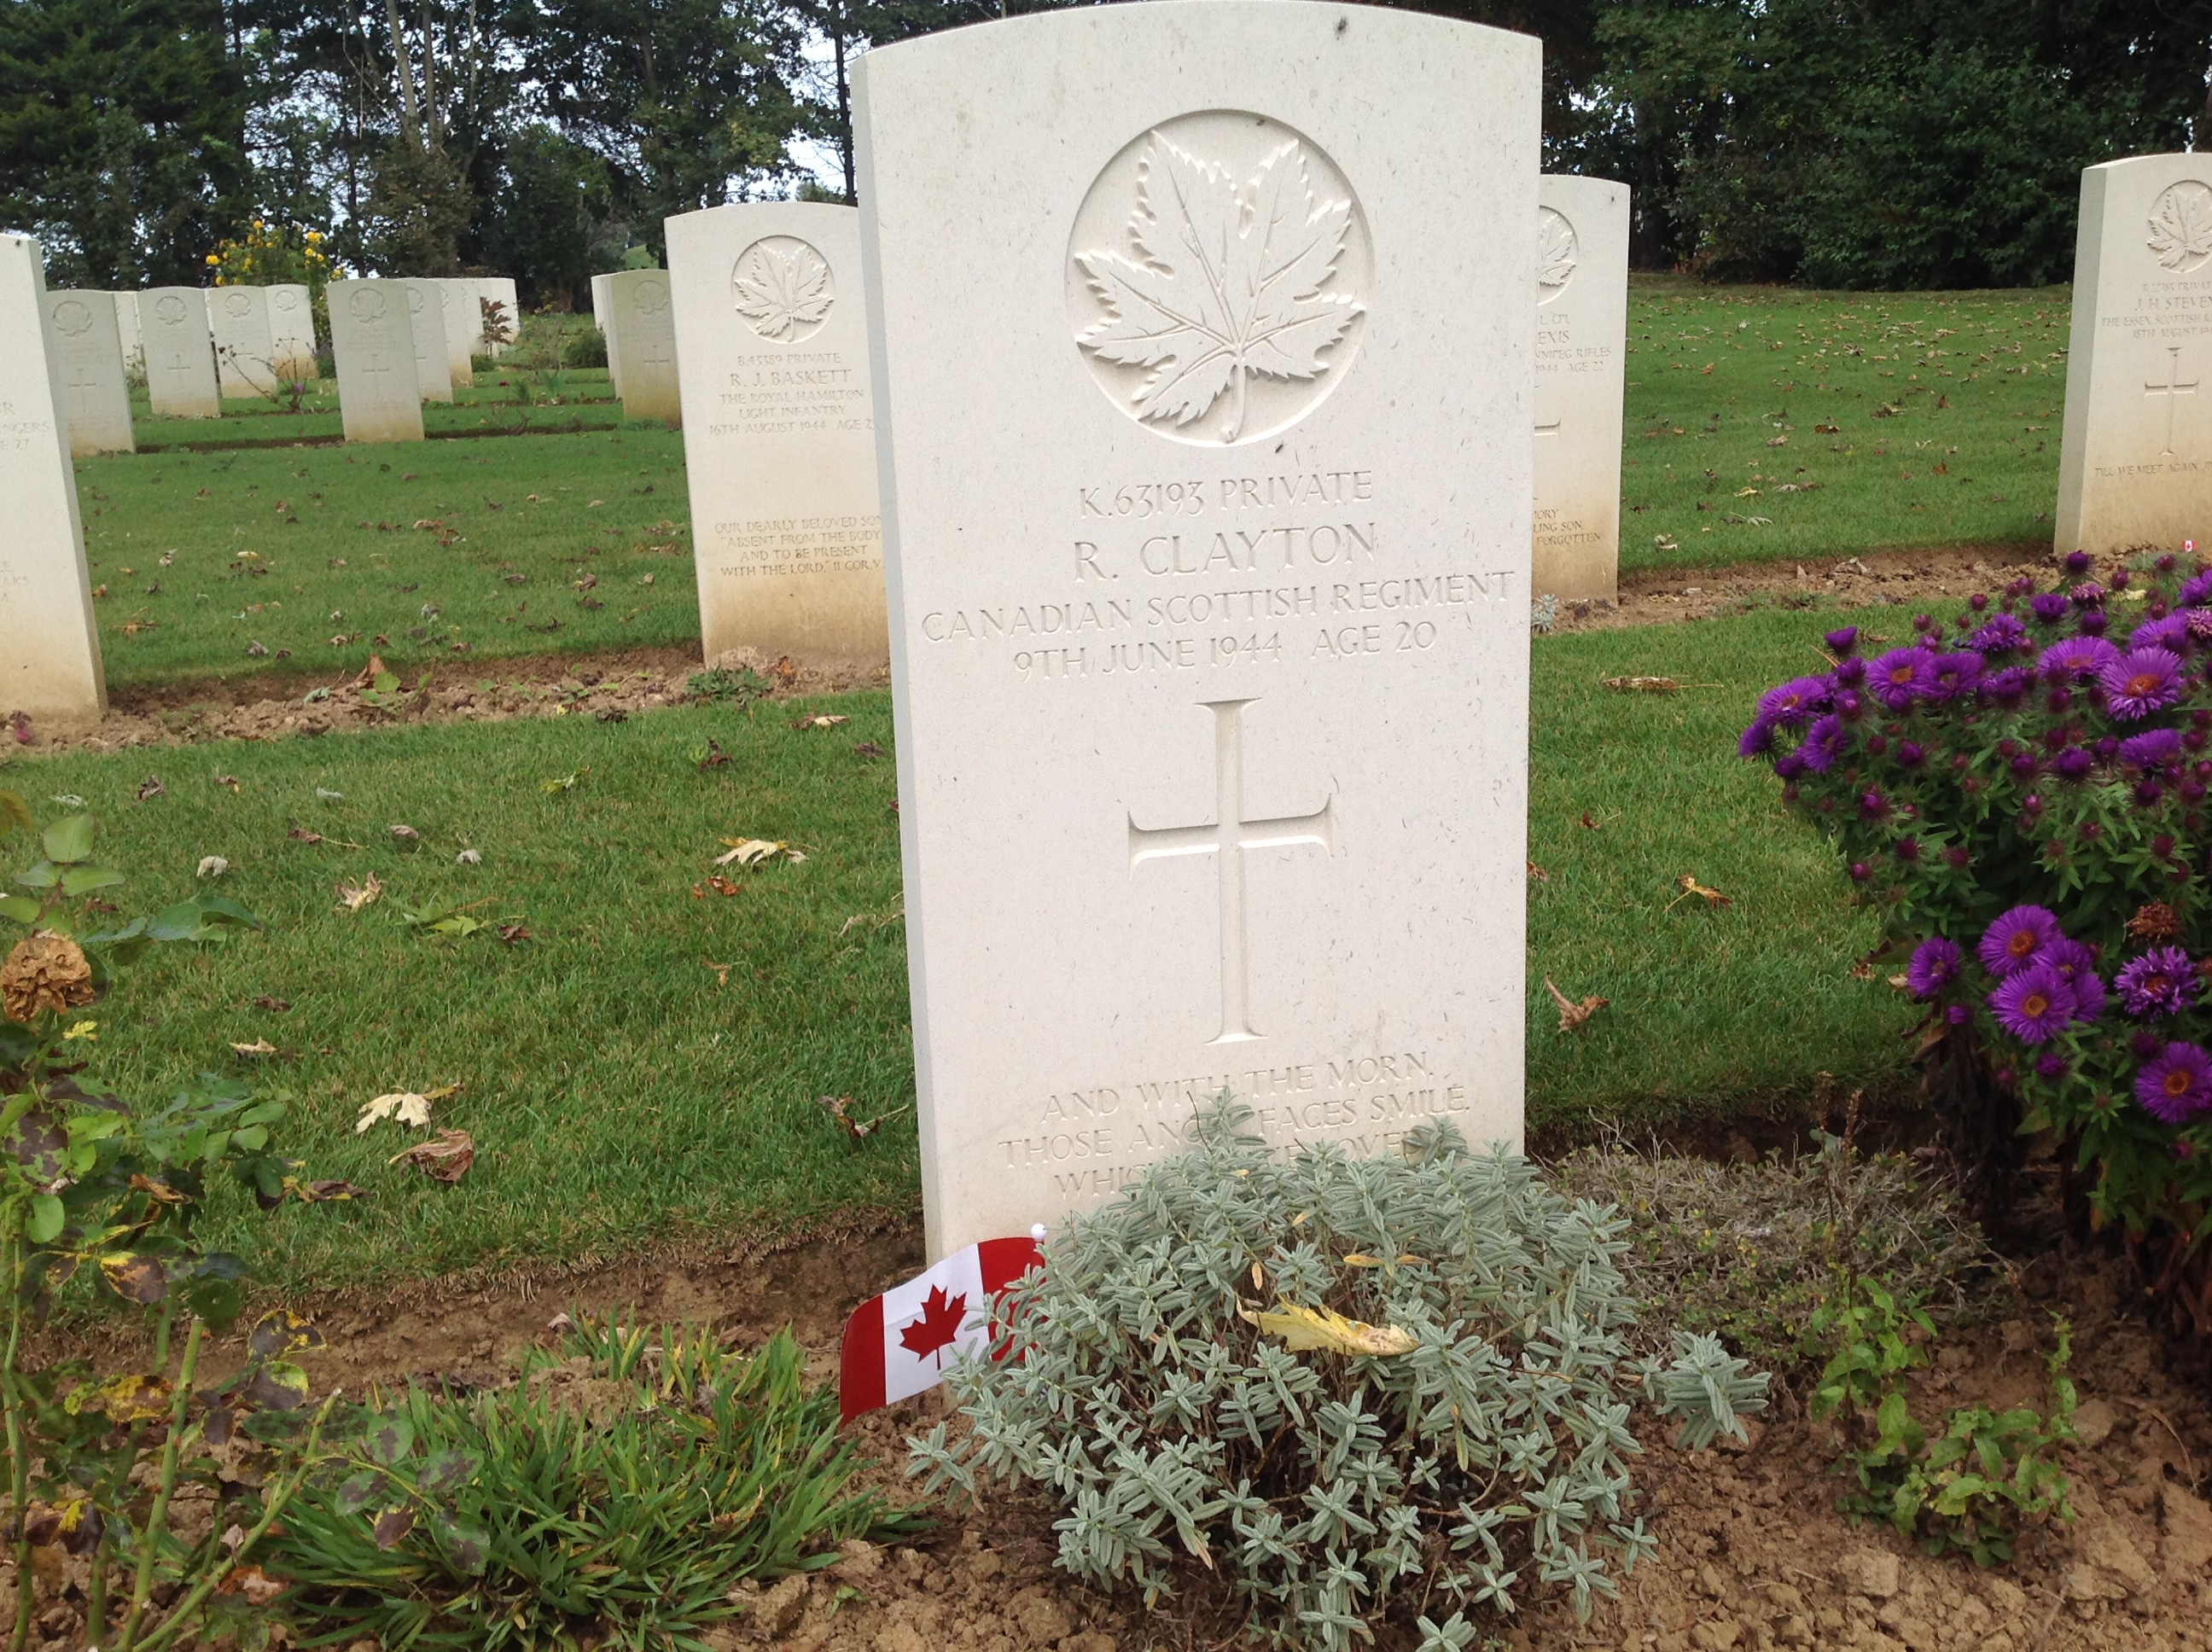 R. Clayton of the Canadian Scottish Regiment died three days after D-Day in 1944 at the age of just 20.